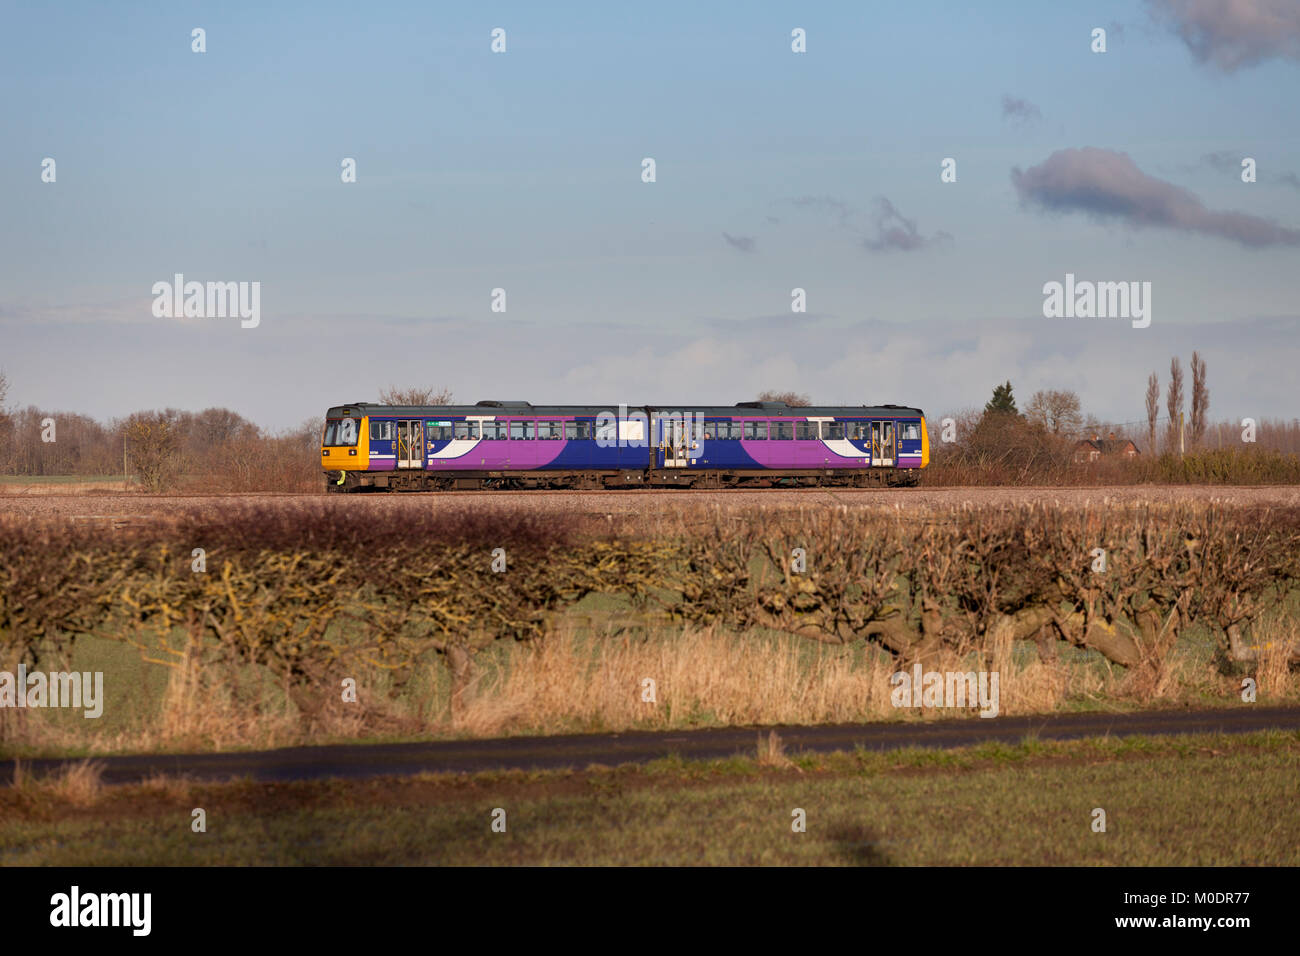 A Northern rail class 142 pacer train passing Teesside Airport - Stock Image